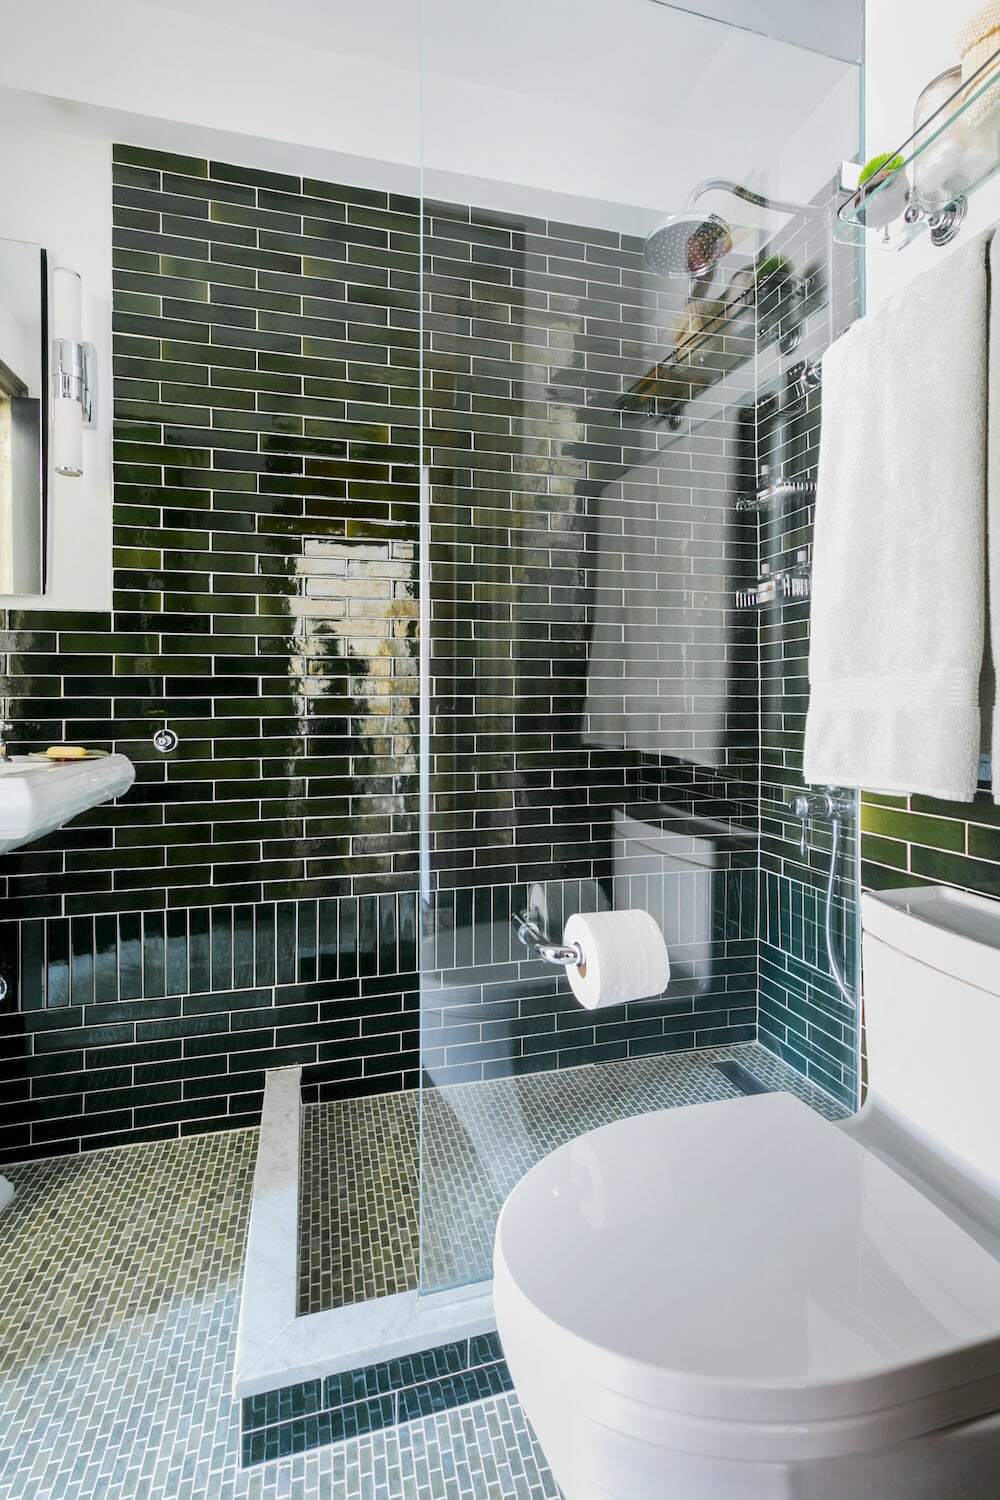 Gramercy Park bathroom, bathroom renovation, tile, glass divider, tile floor, tile wall, toilet